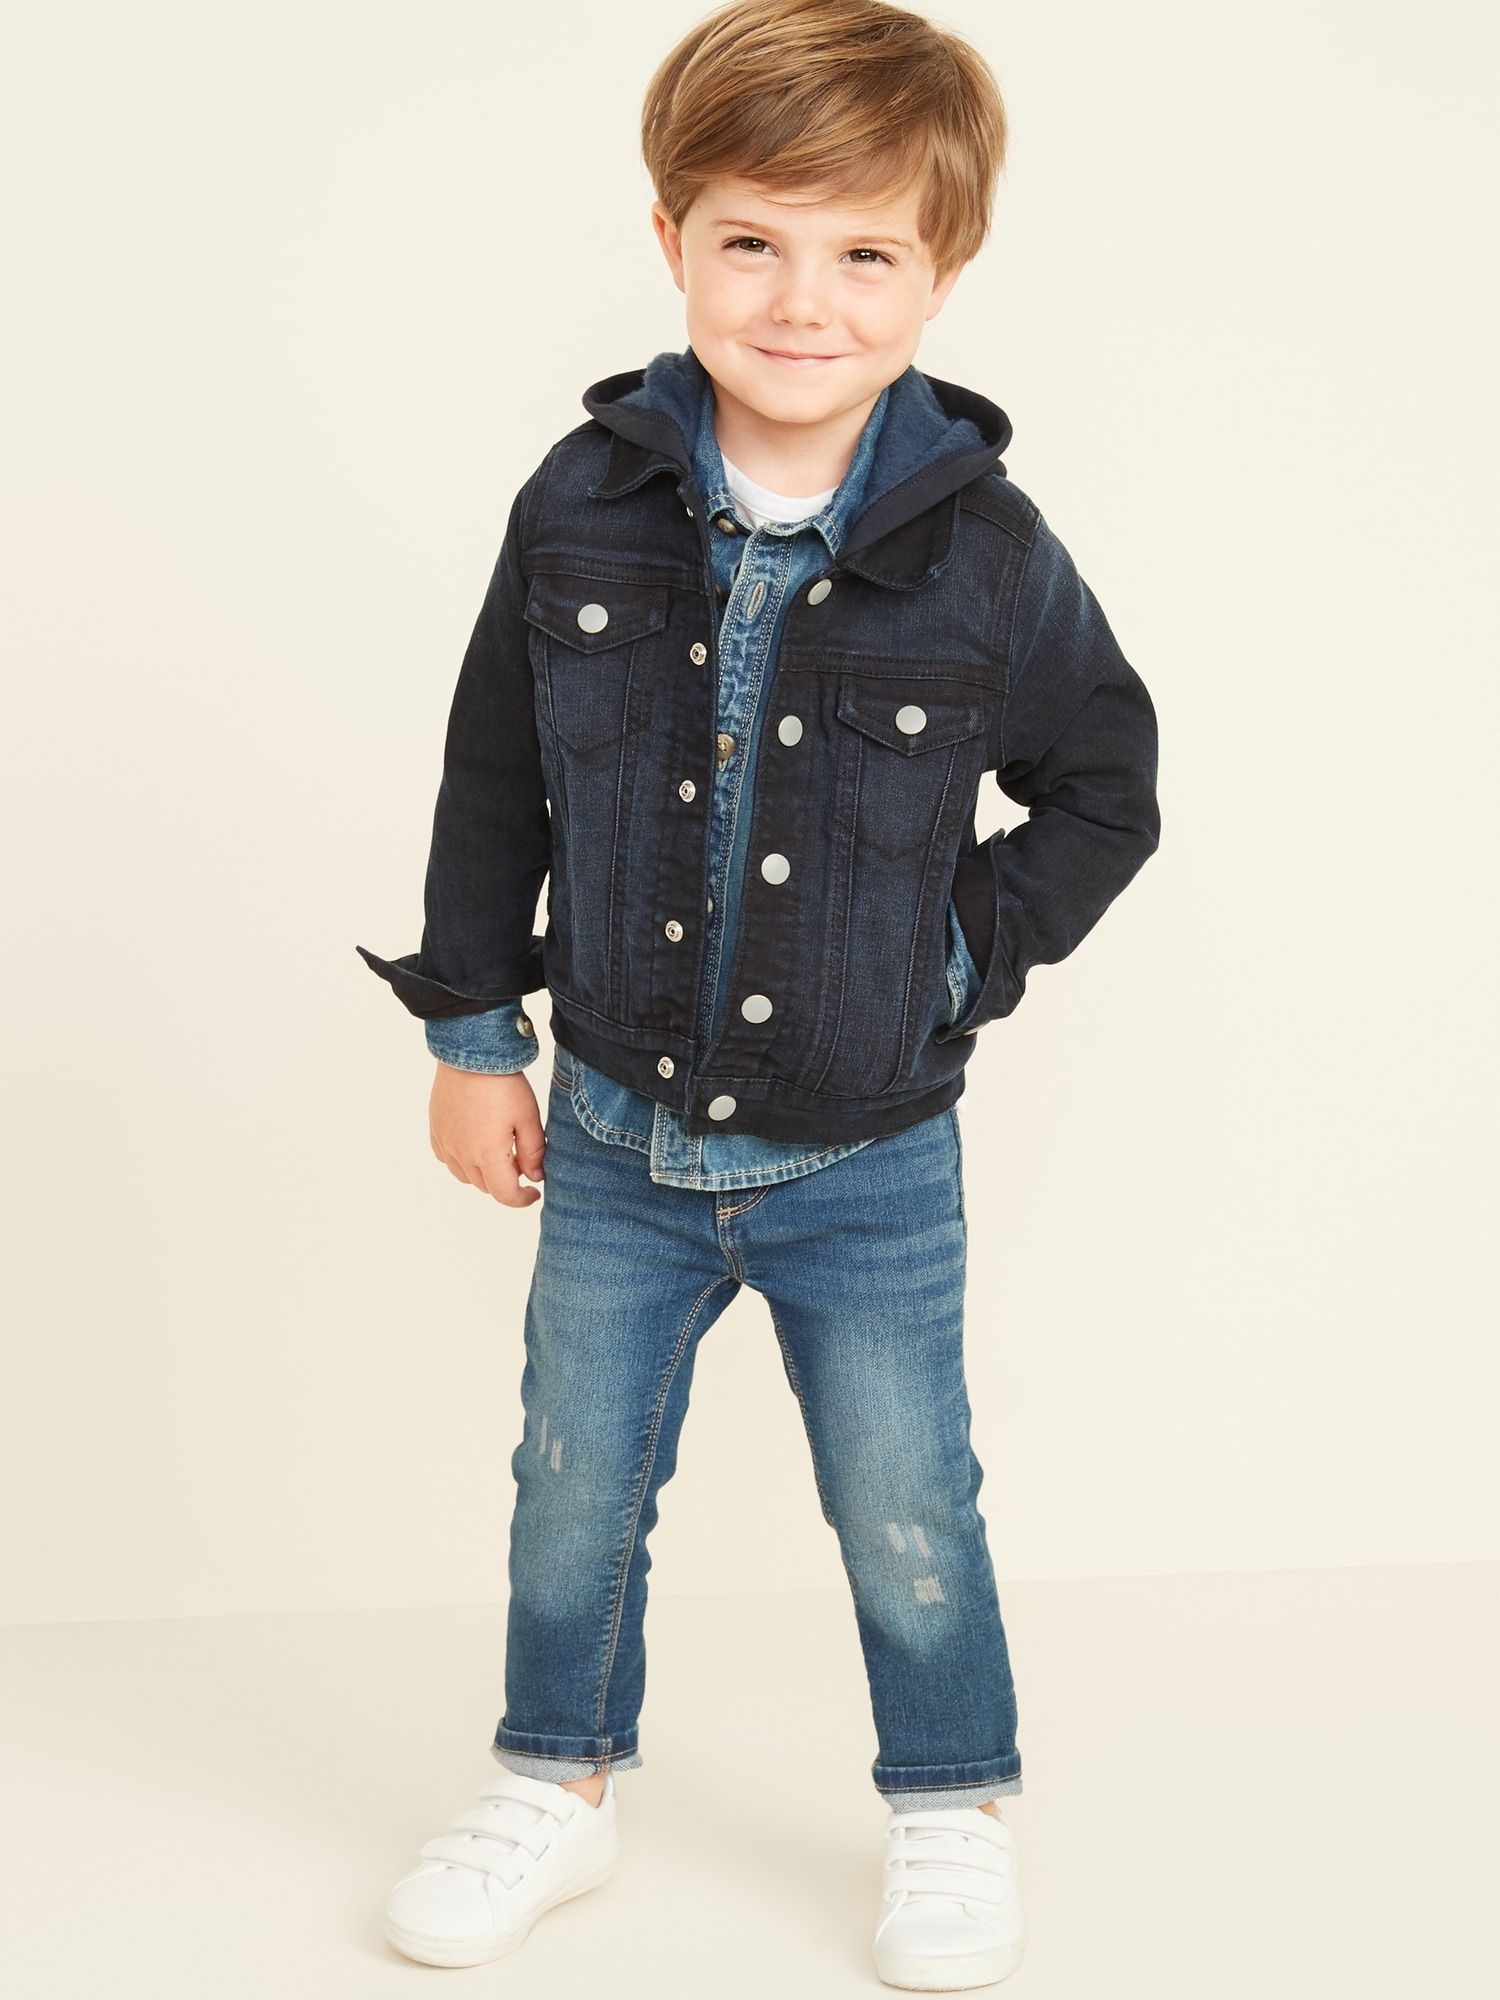 Hooded Jean Jacket For Toddler Boys Old Navy Kids Jeans Boys Jeans Kids Toddler Boy Fashion [ 2000 x 1500 Pixel ]